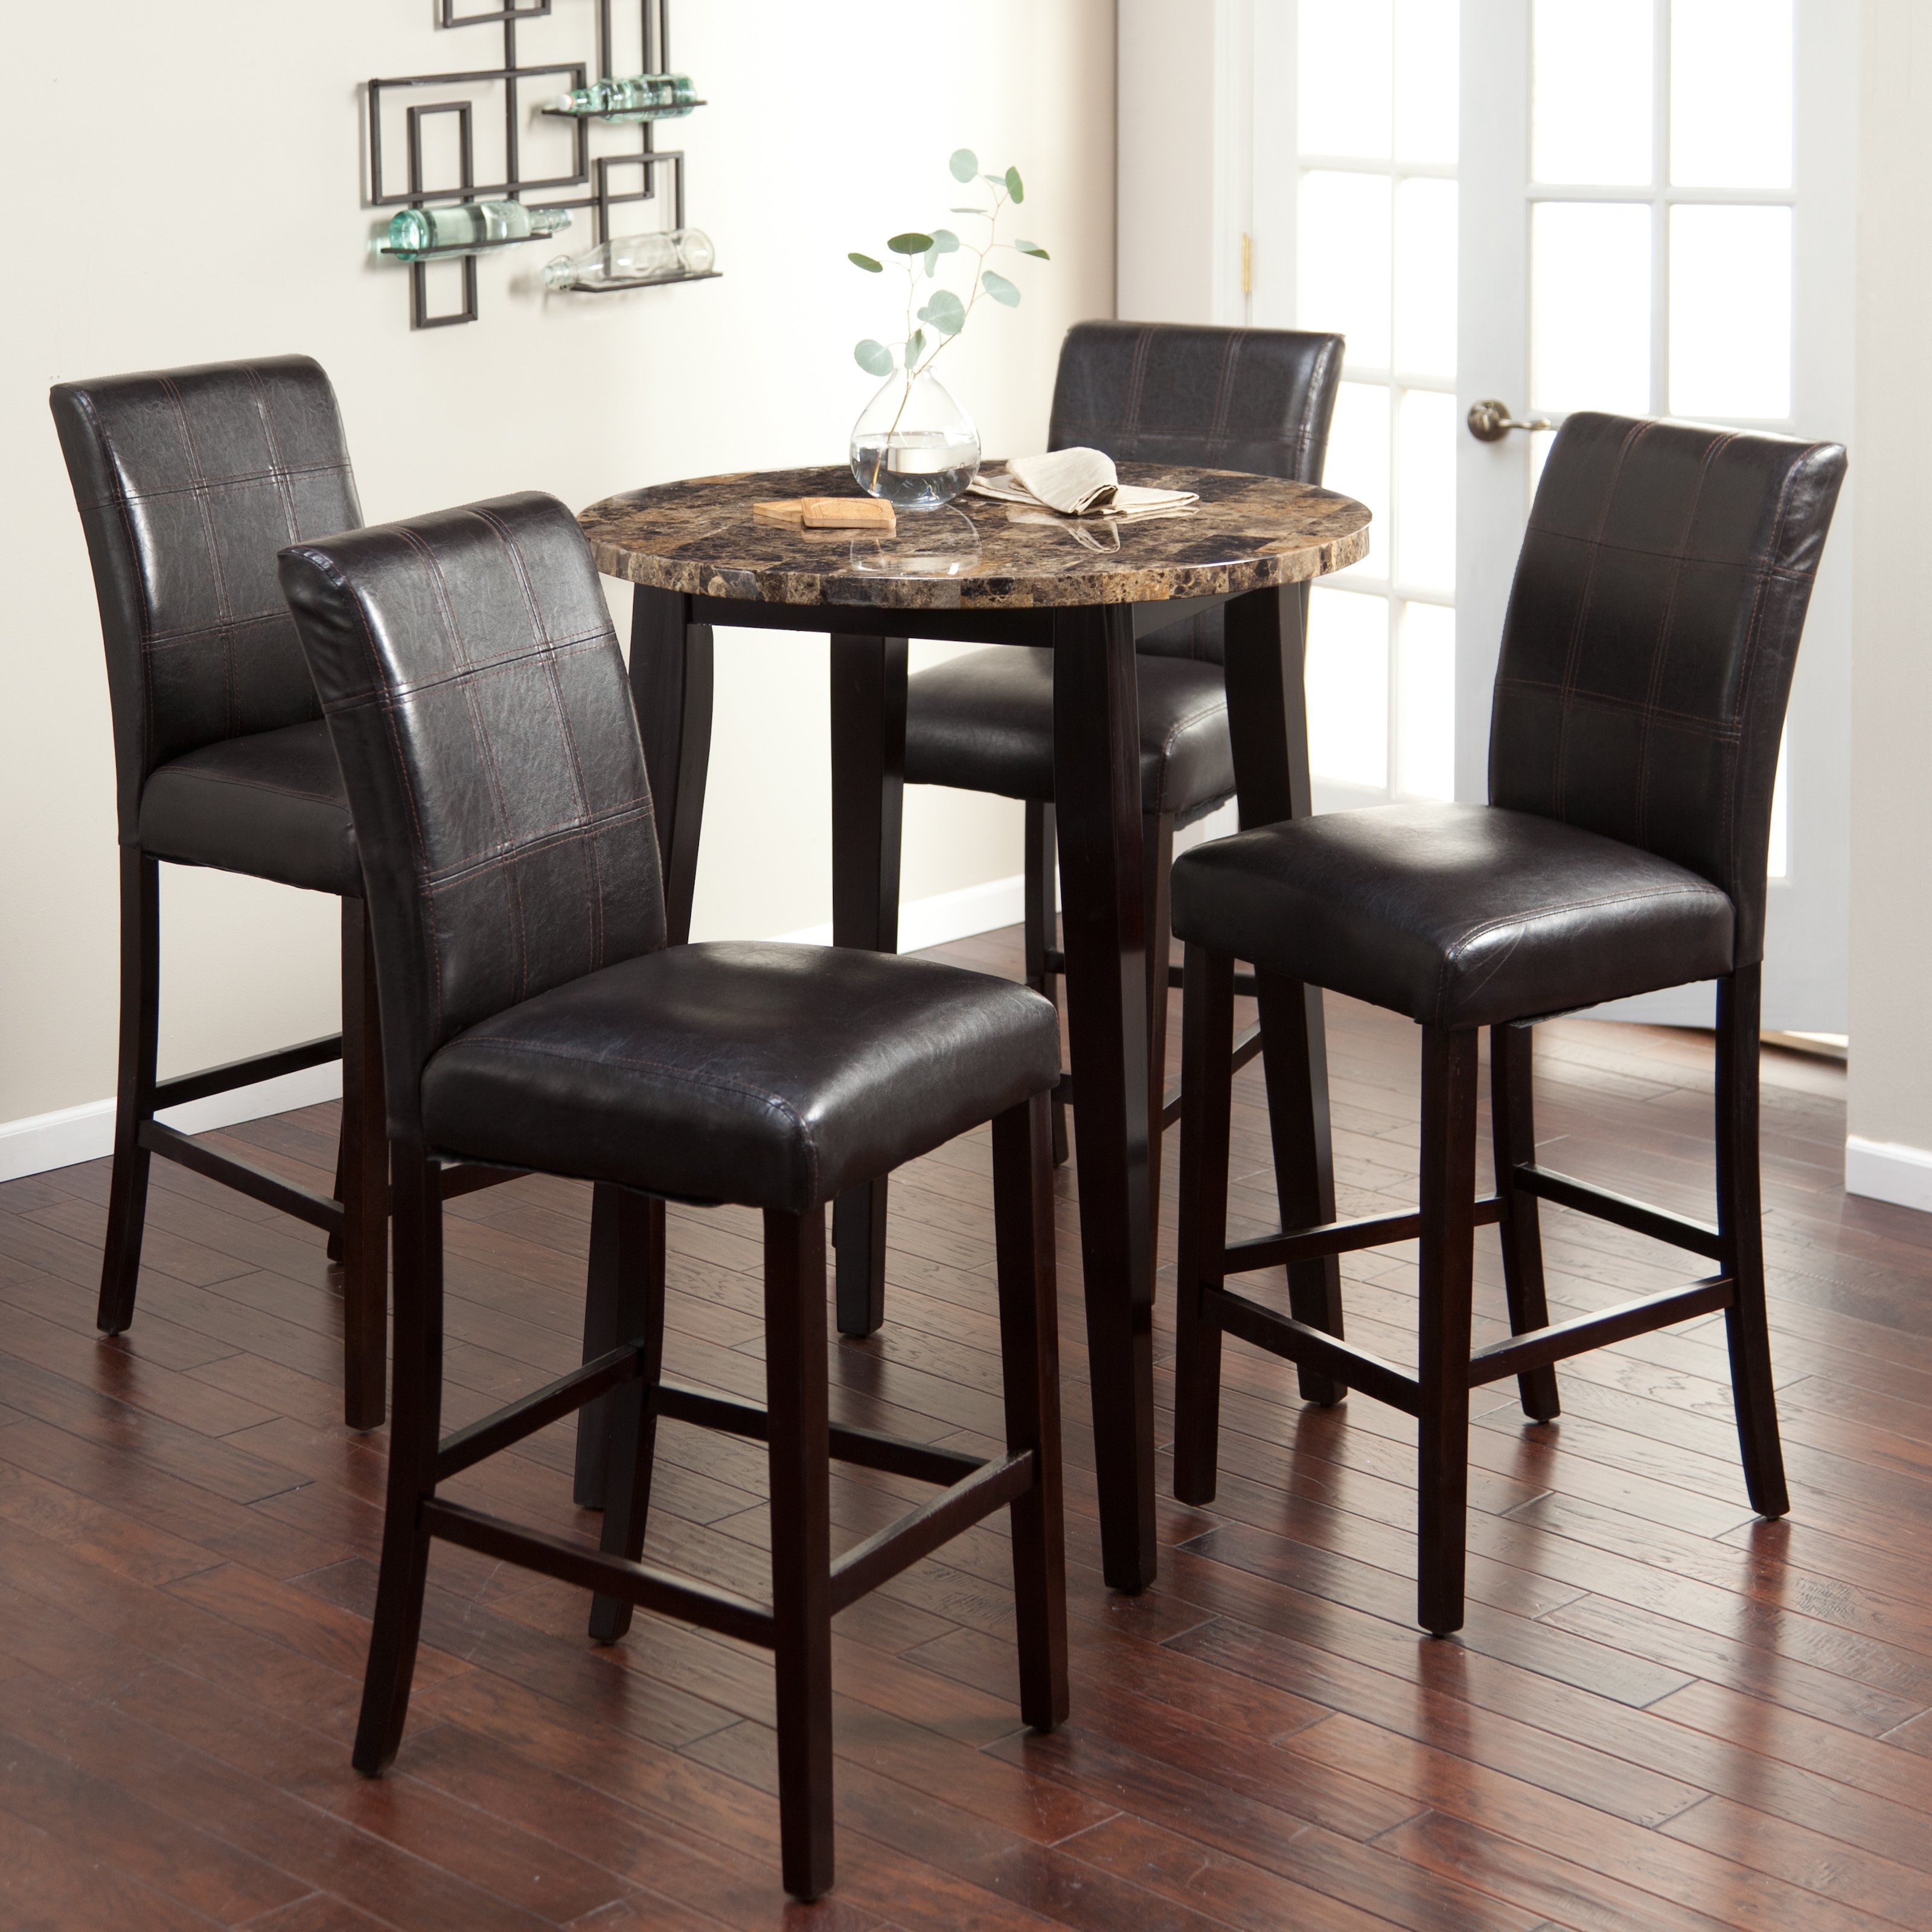 Cozy Palazzo 5 Piece Round Bar-Height Pub Set - Bar u0026 Pub Tables bar height pub table sets